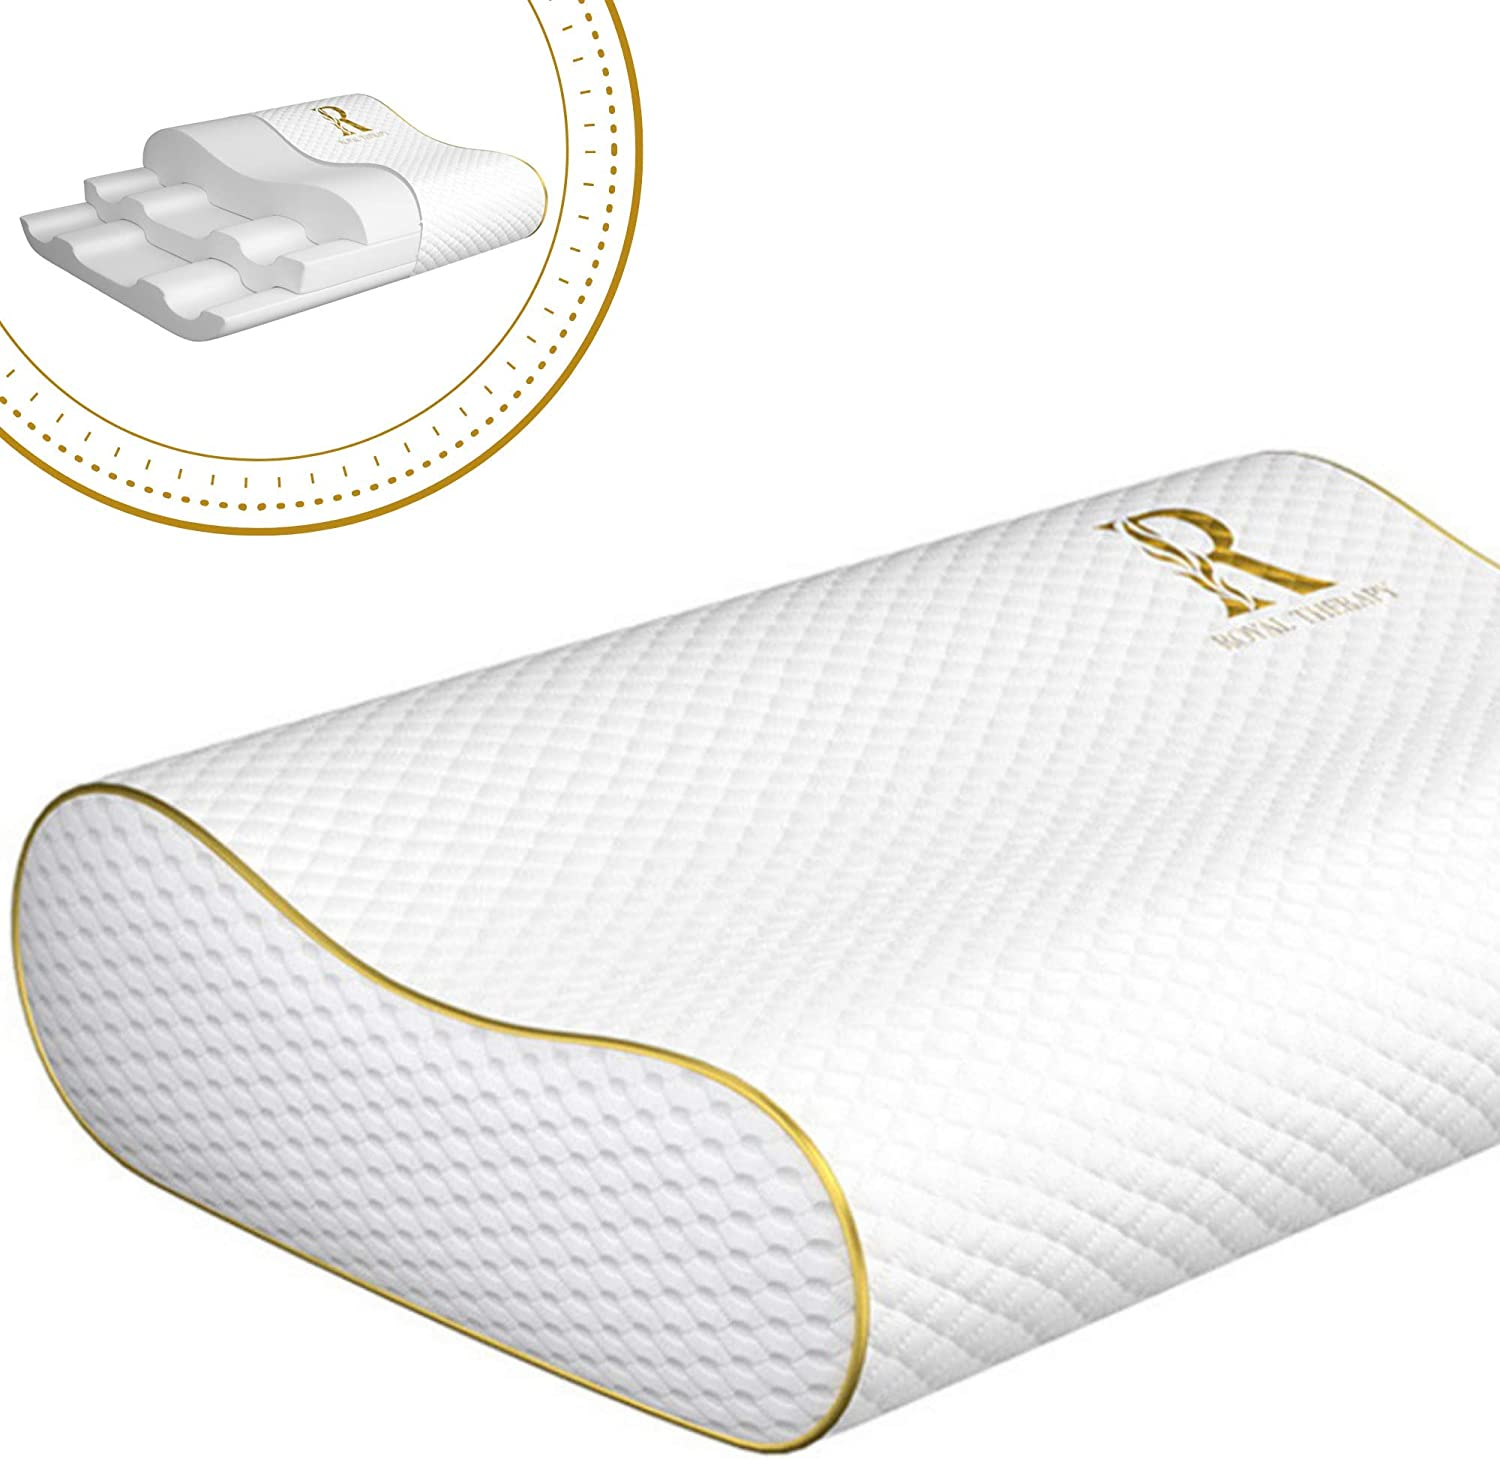 Royal Therapy King Memory Foam Pillow, Neck Pillow Bamboo Adjustable Side Sleeper Pillow for Neck & Shoulder, Support for Back, Stomach, Side Sleepers, Orthopedic Contour